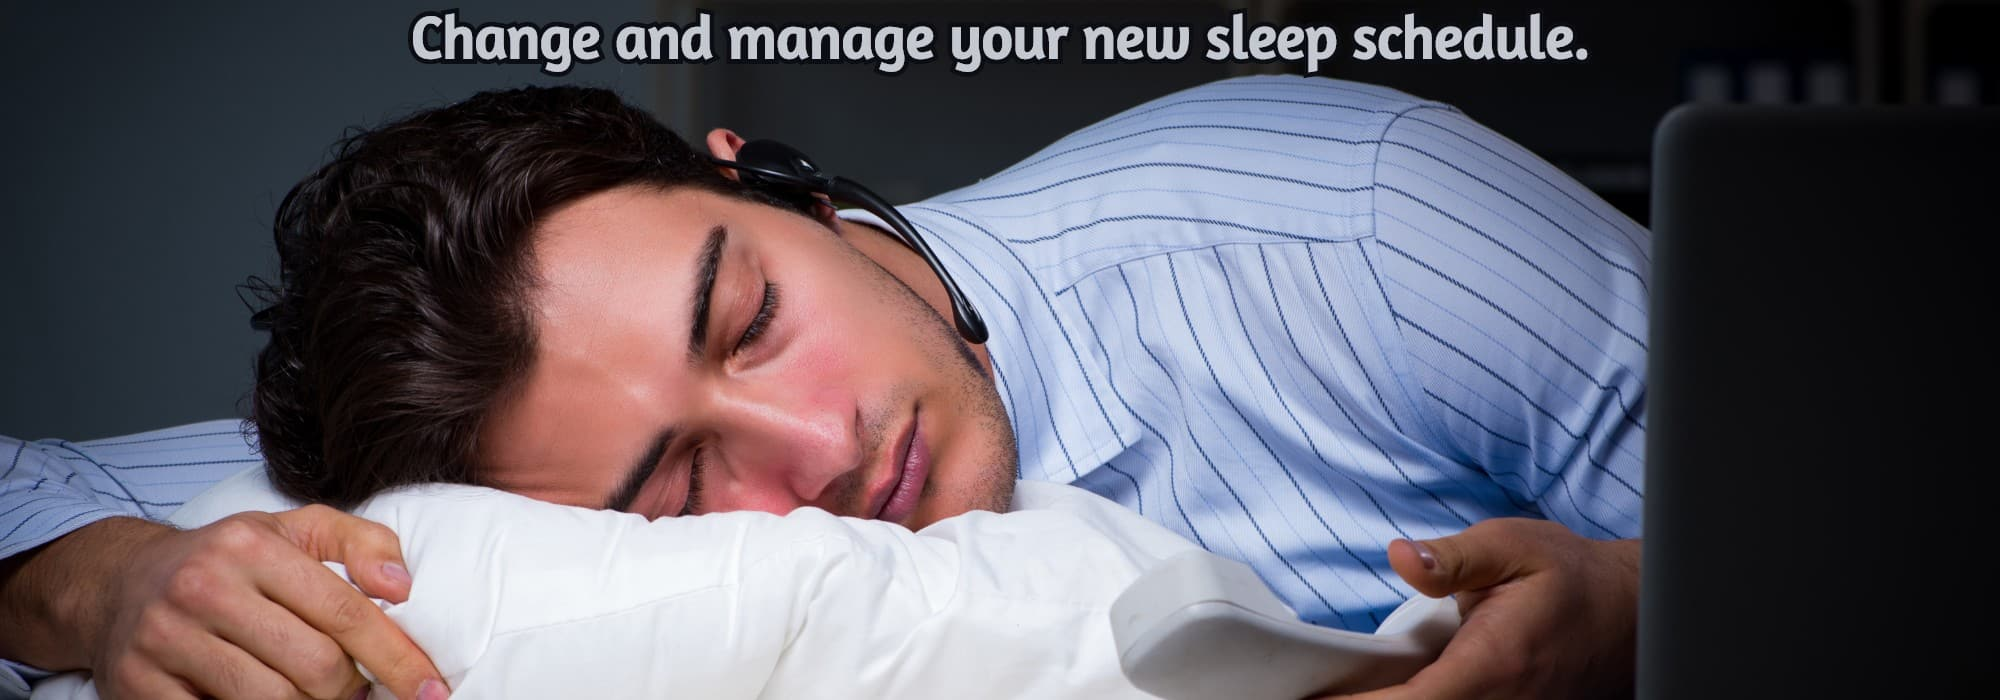 Change and manage your new sleep schedule. afinilexpress.com